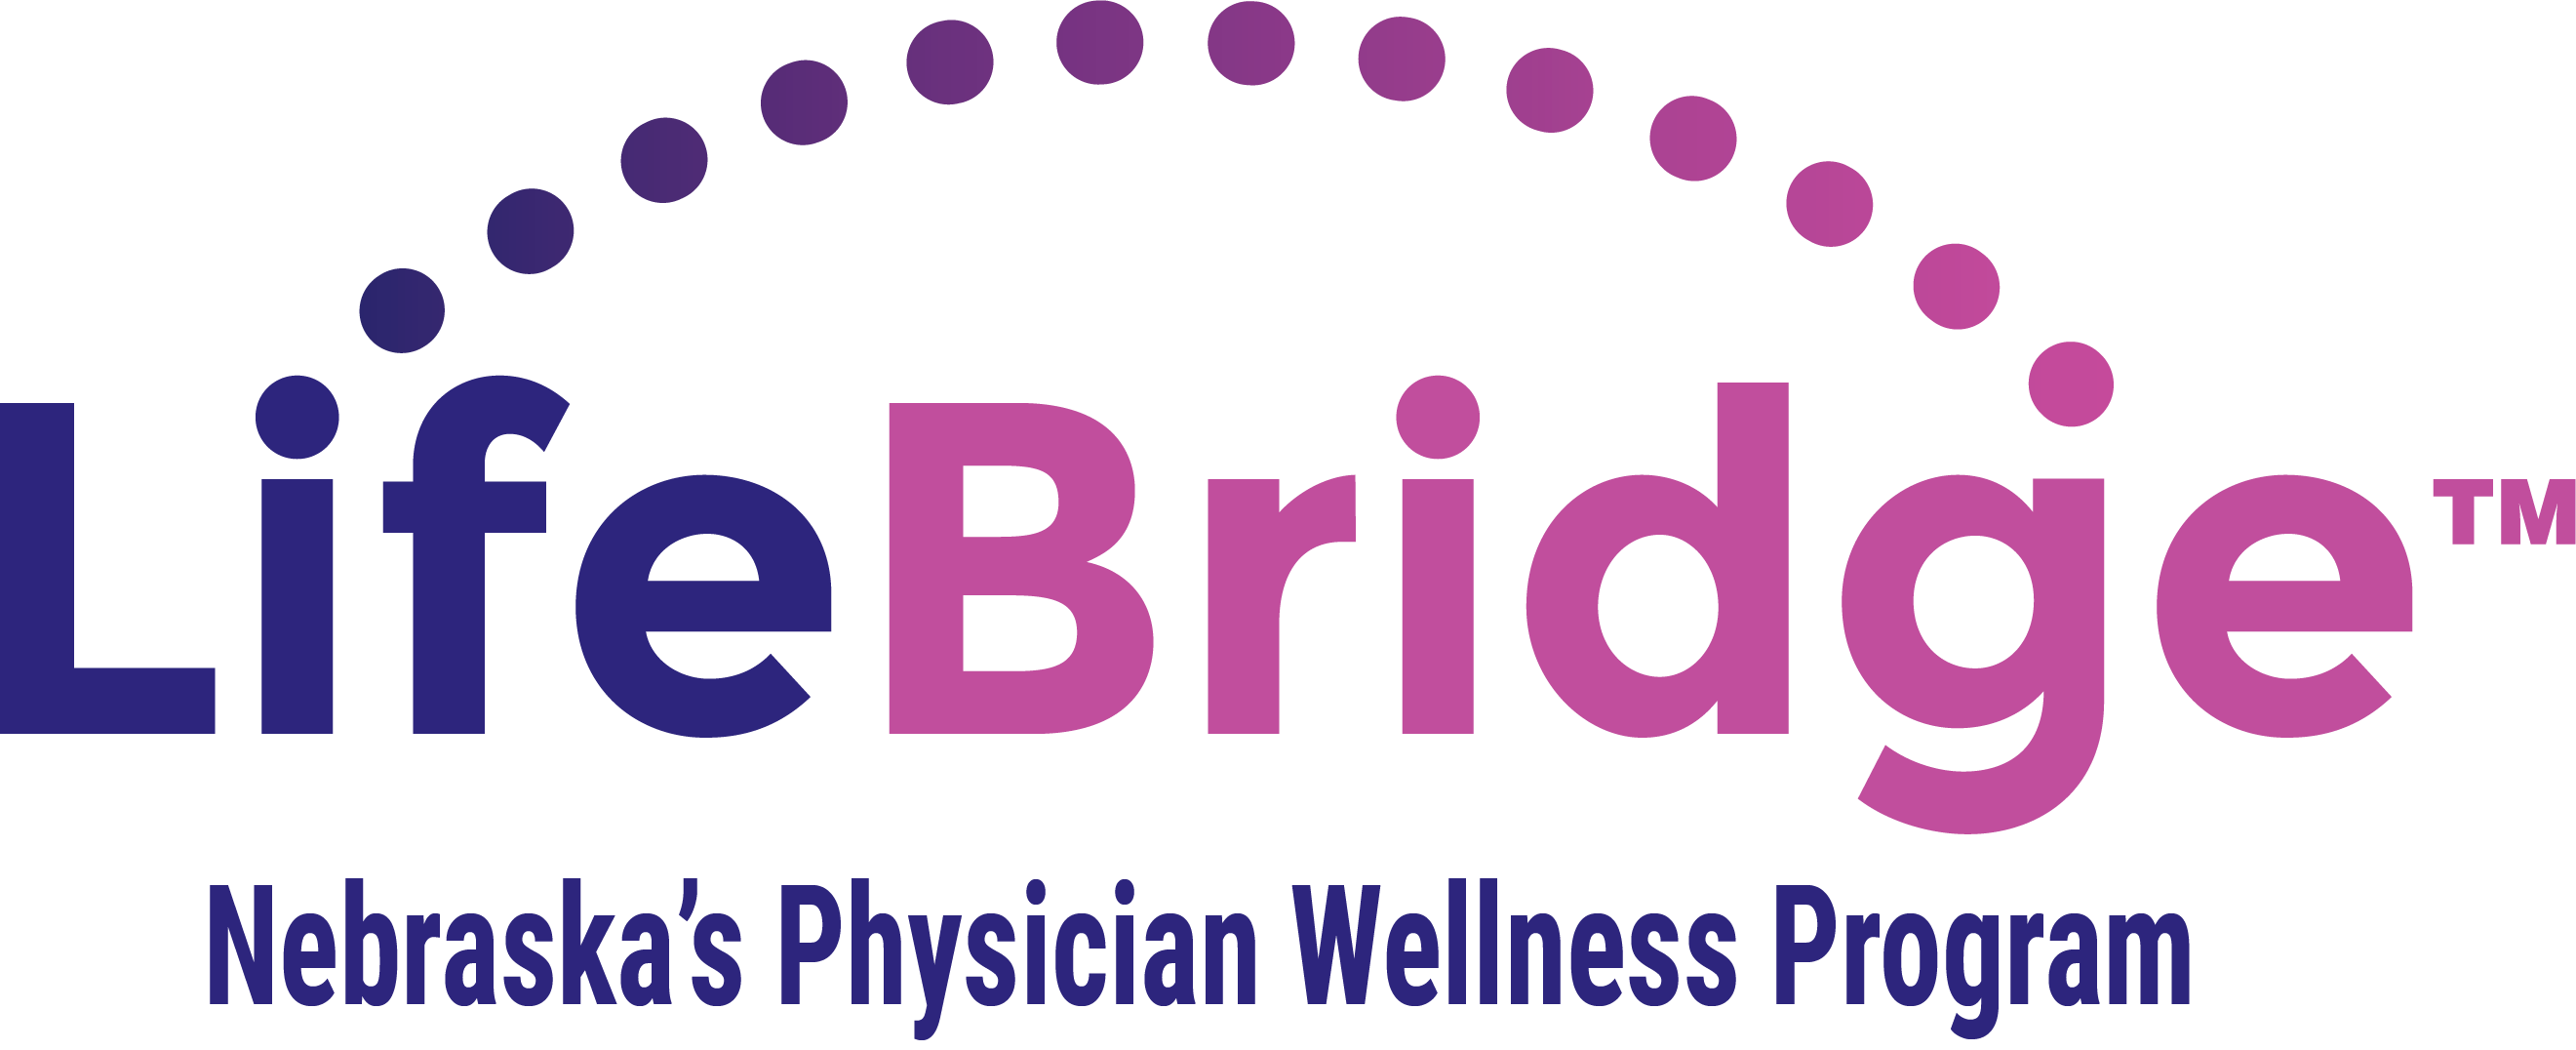 LifeBridge Nebraska—Nebraska's Physician Wellness Program